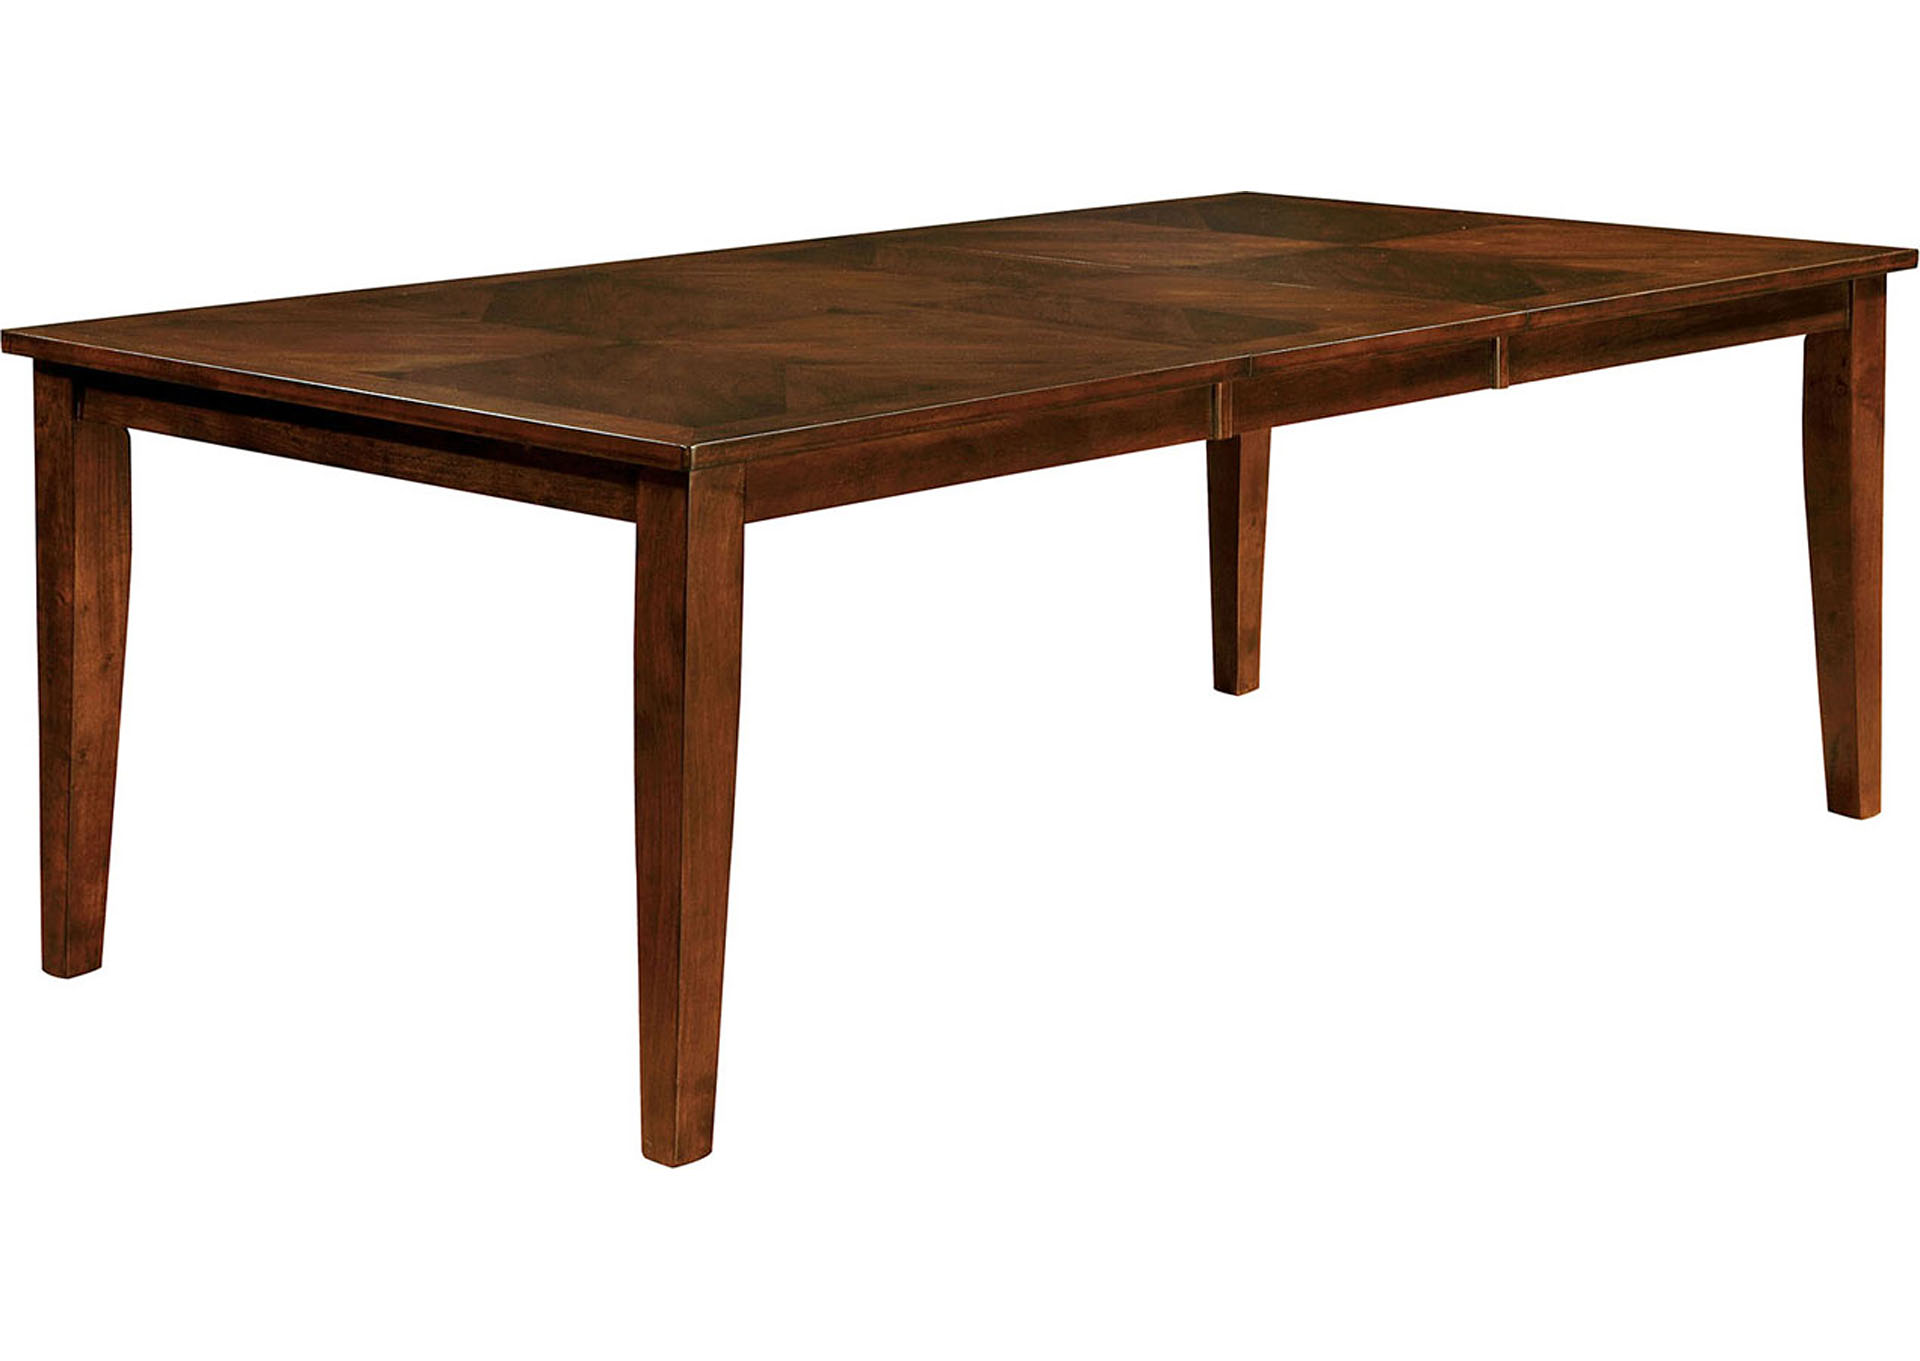 "Hillsview I Brown Cherry 78"" Extension Leaf Dining Table w/6 Side Chairs,Furniture of America"